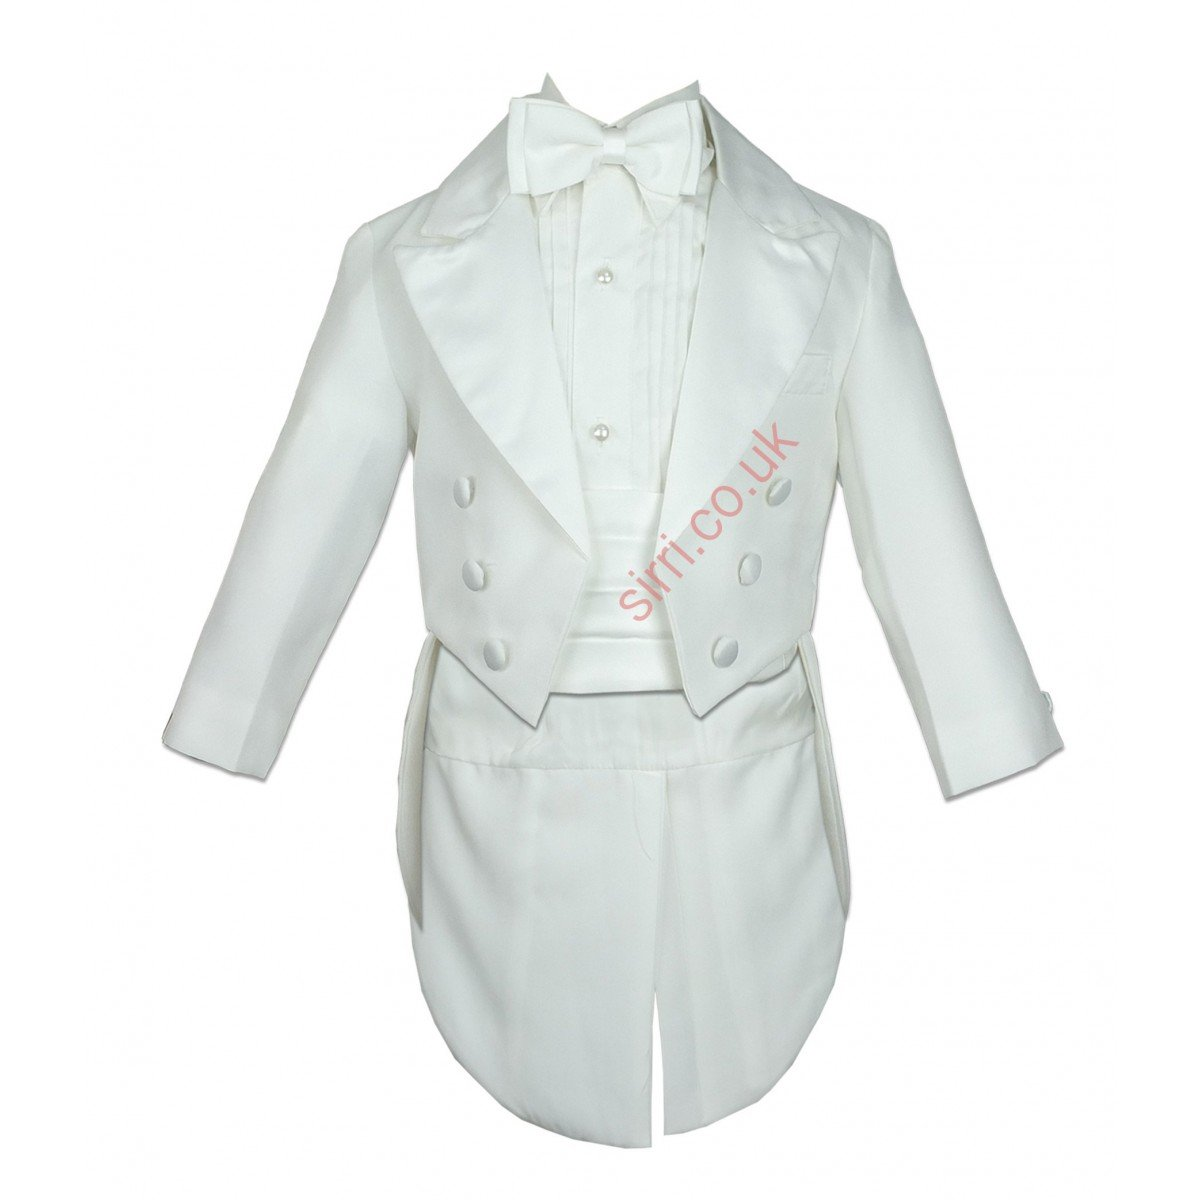 BABY BOYS IVORY TUXEDO CREAM TAIL SUIT 5 PIECES CHRISTENING BAPTISM OUTFIT